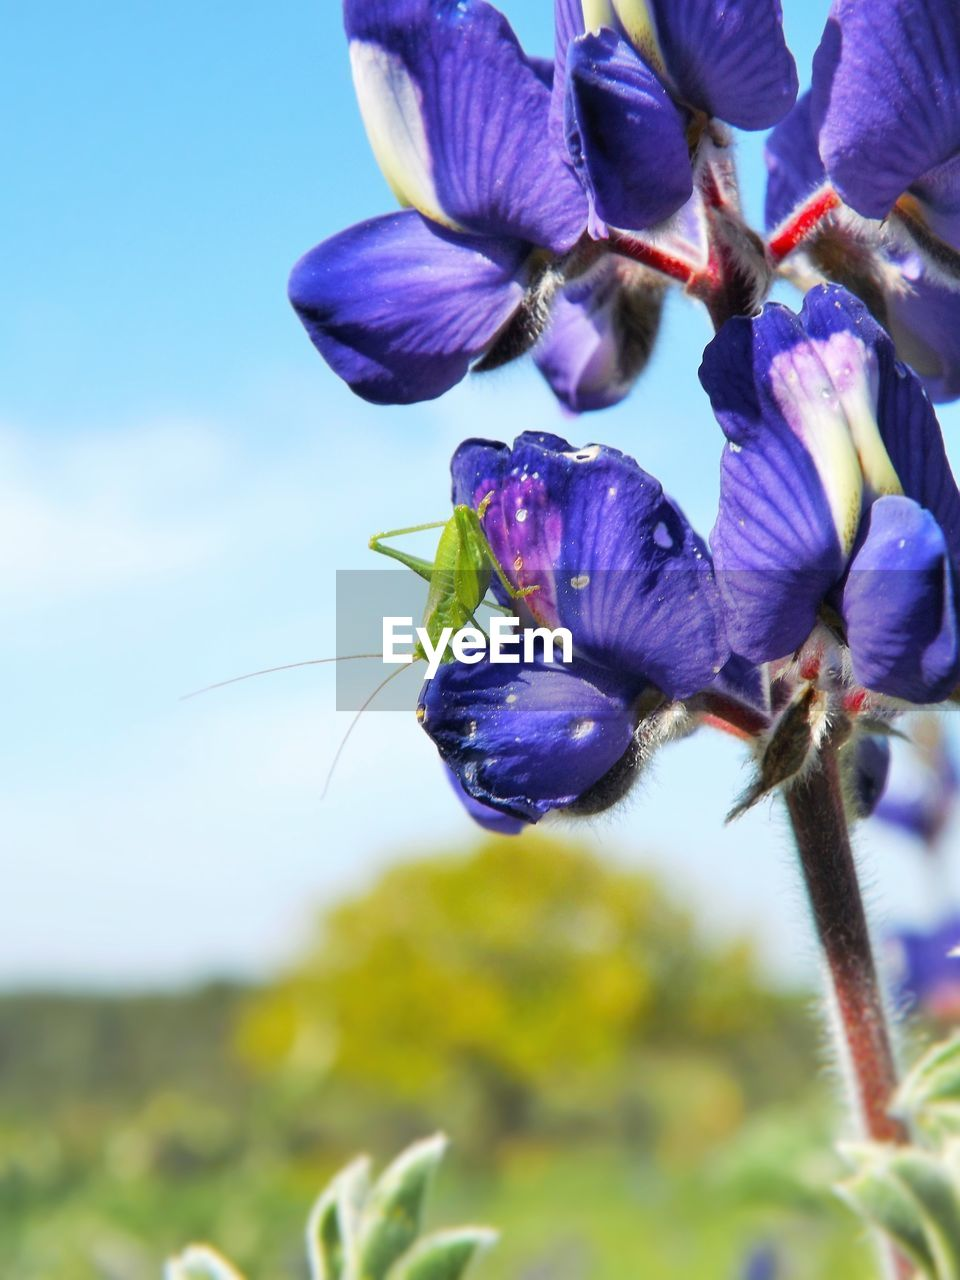 flowering plant, flower, plant, growth, freshness, beauty in nature, fragility, vulnerability, petal, close-up, inflorescence, purple, nature, flower head, focus on foreground, no people, sky, day, botany, outdoors, springtime, sepal